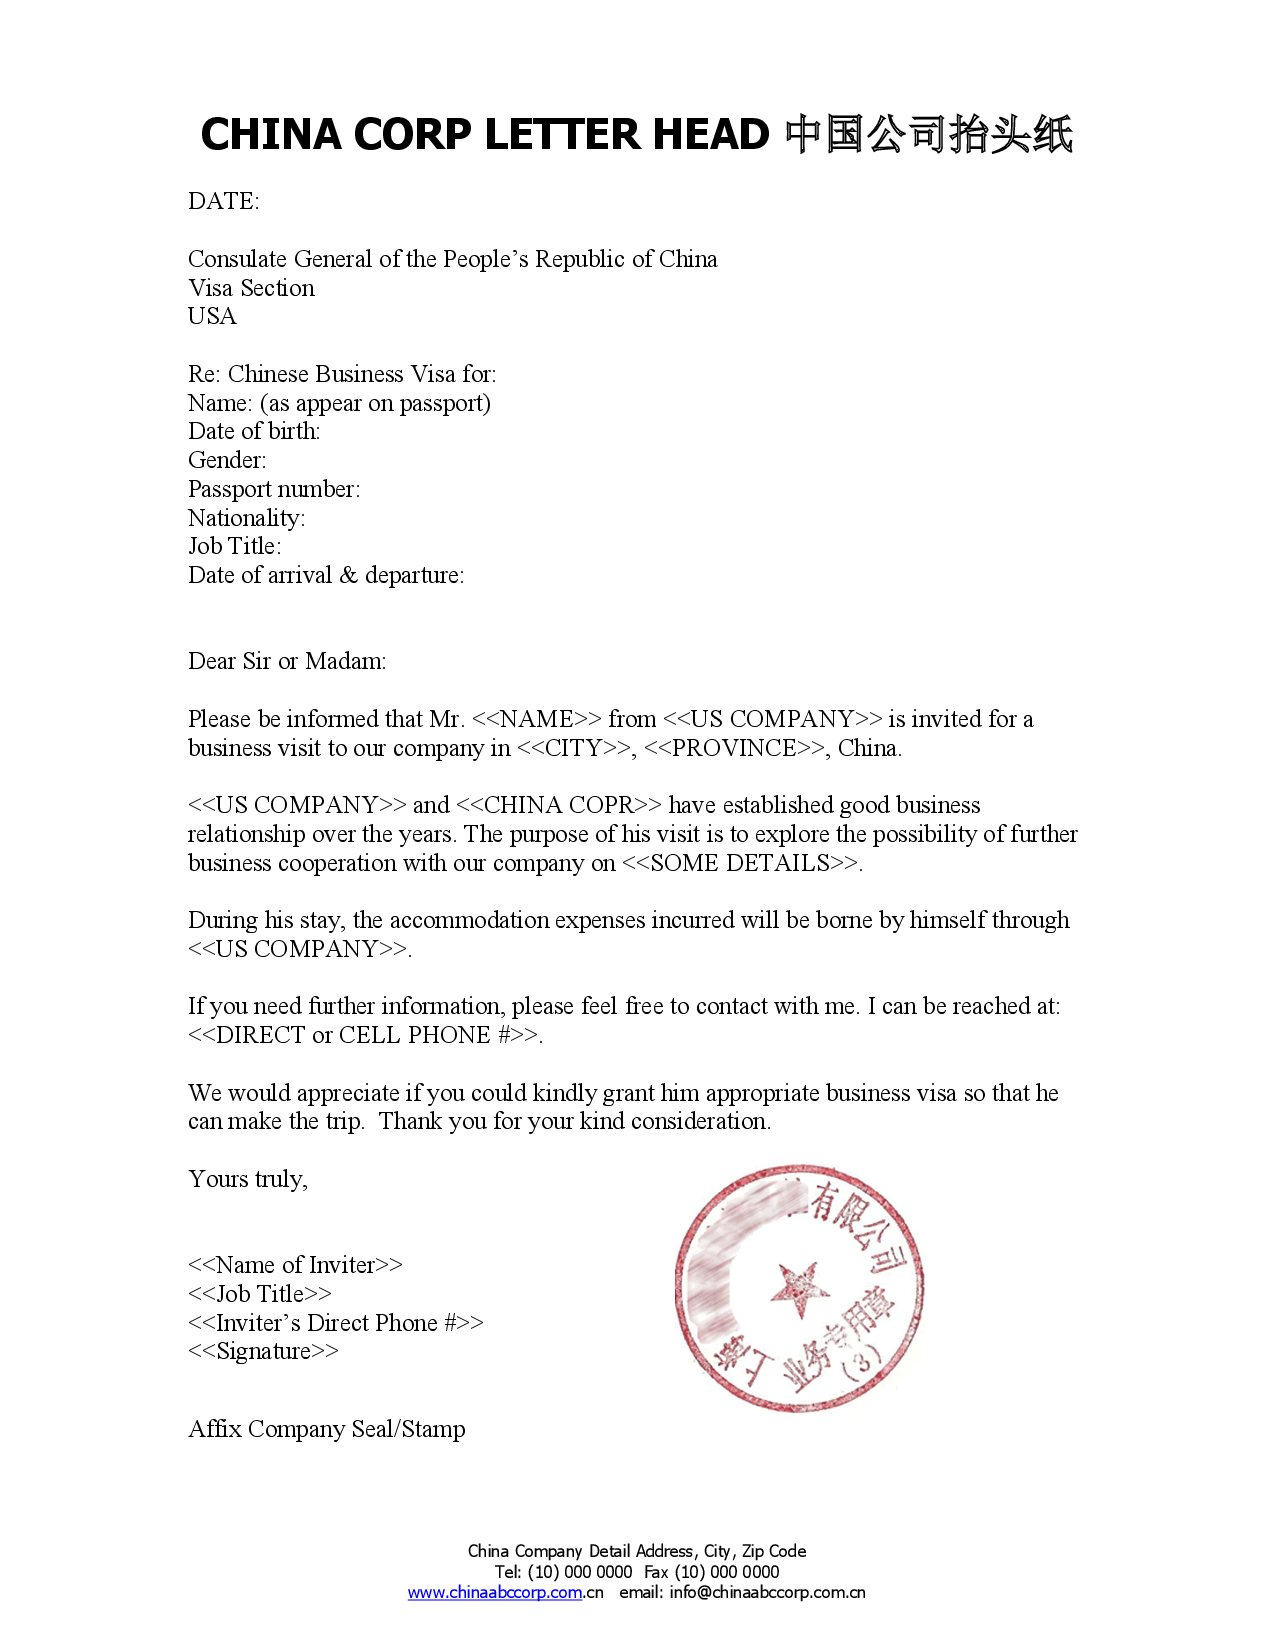 Format invitation letter for business visa to china lettervisa format invitation letter for business visa to china lettervisa invitation letter application letter sample yelopaper Choice Image